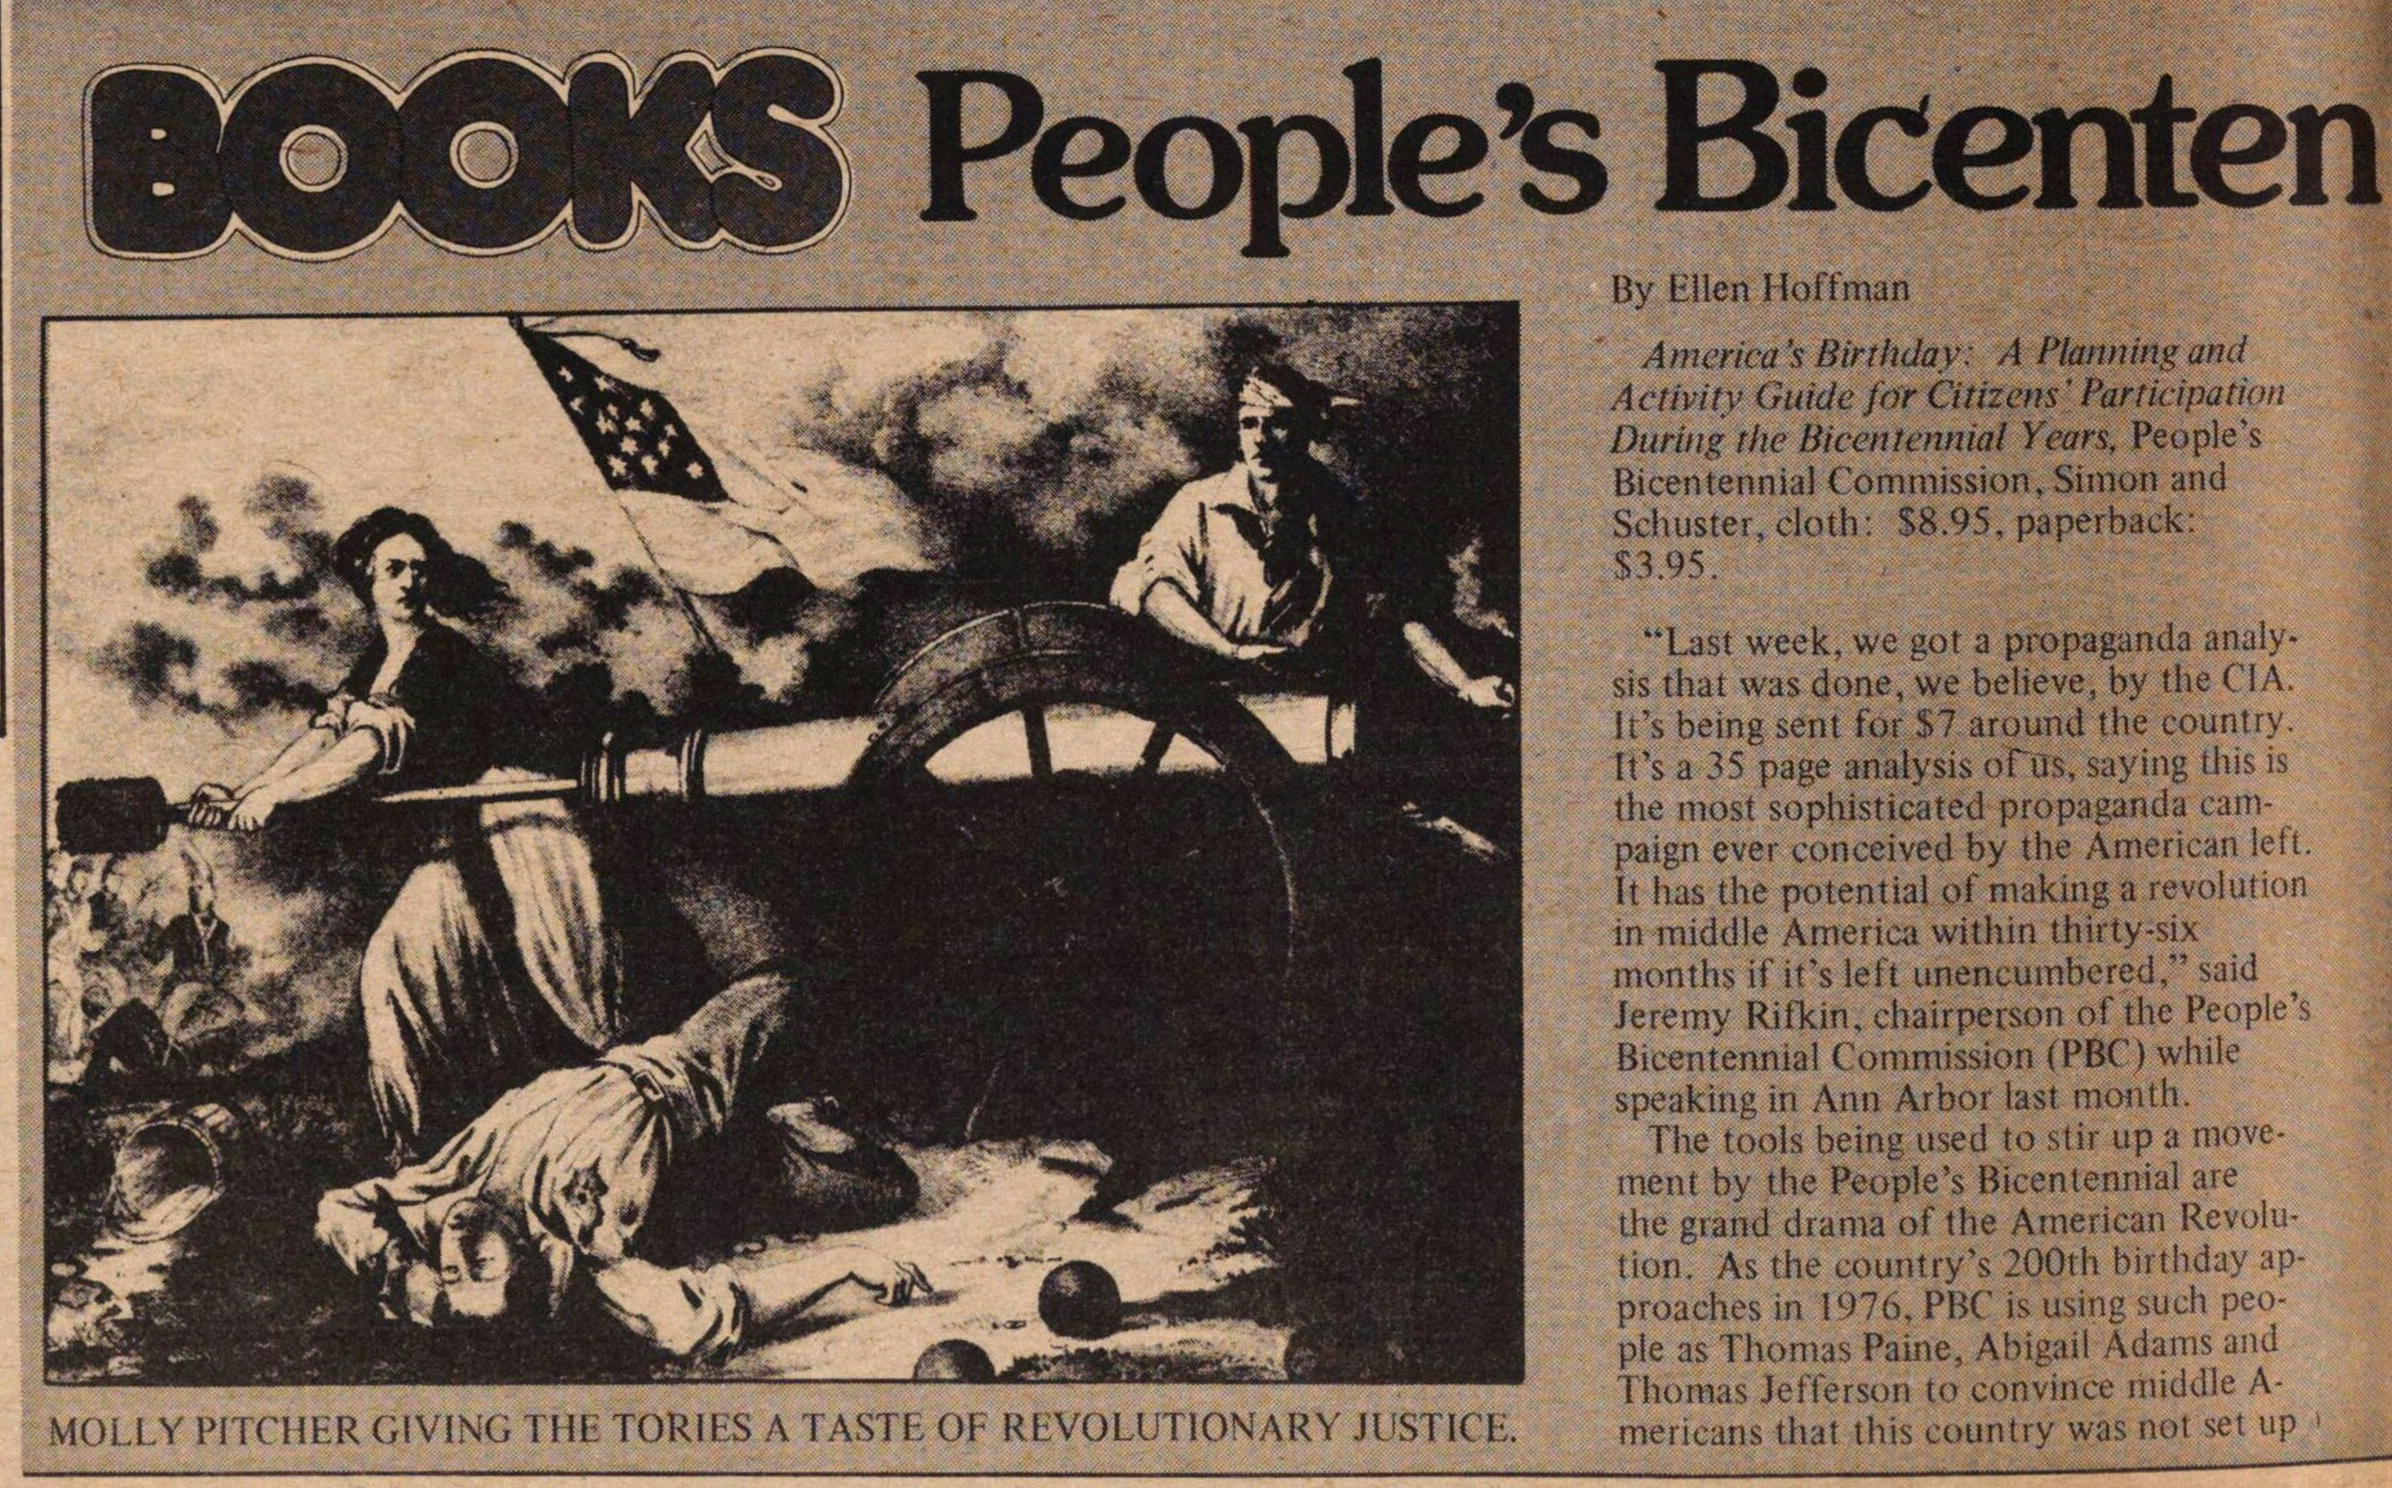 Books People's Bicentennial image